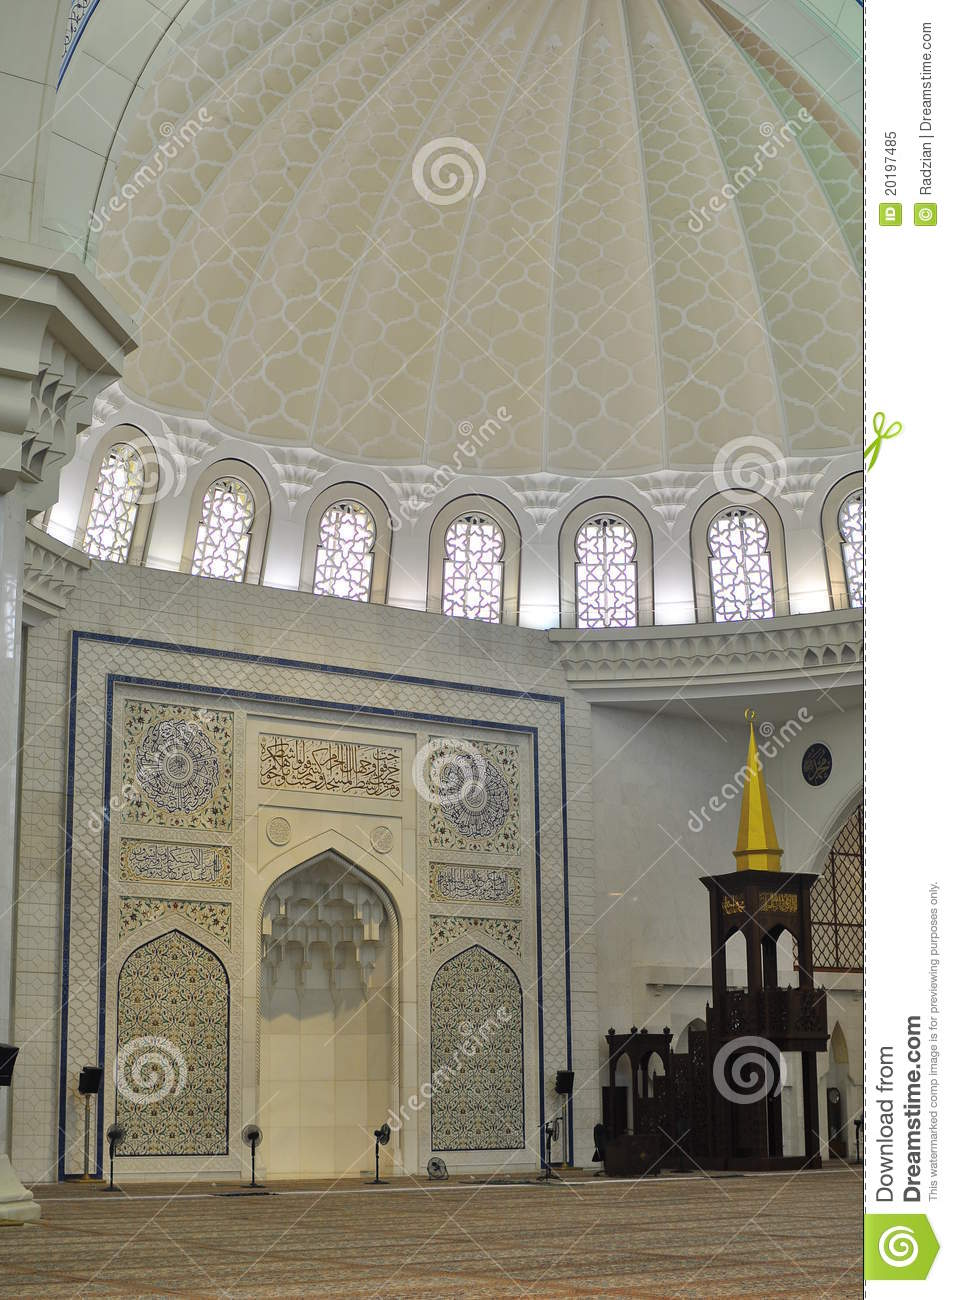 The beautiful interior design of wilayah mosque stock for Architecture interior design photos